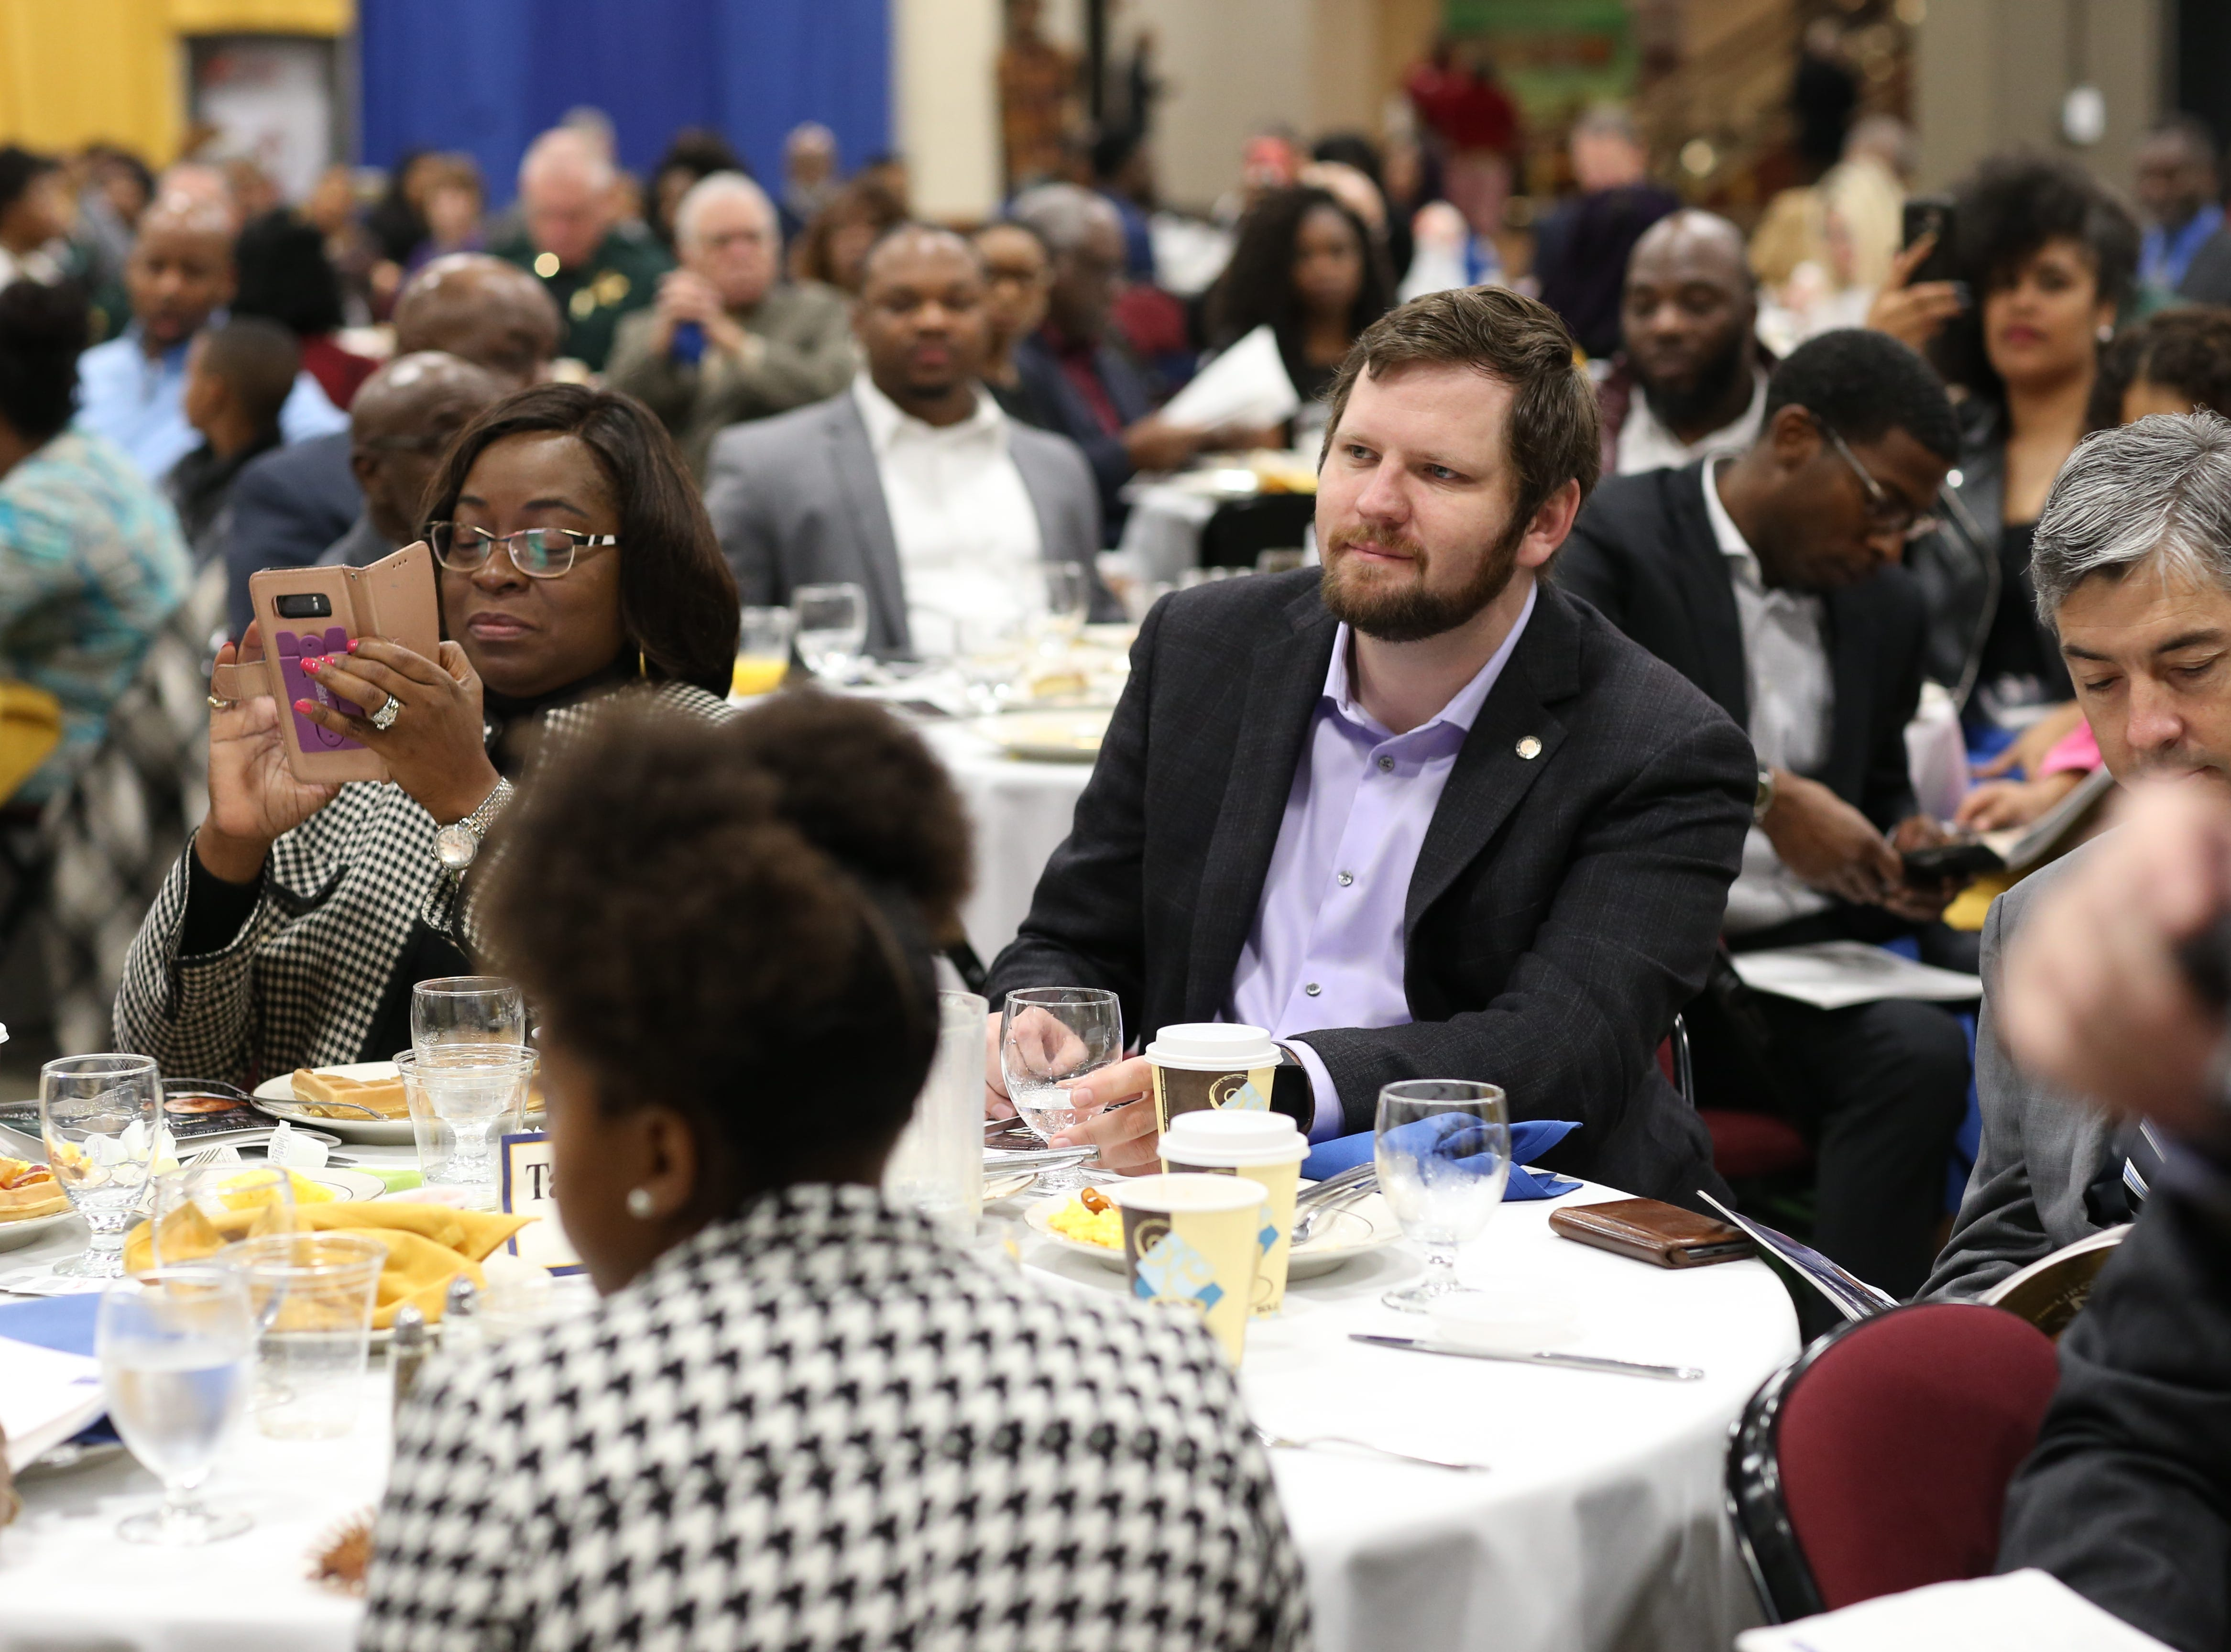 City Commissioners Dianne Williams-Cox and Jeremy Matlow listen as DETROITLIVE performs during the Martin Luther King Jr. commemorative breakfast at the Donald L. Tucker Civic Center Friday, Jan. 18, 2019.